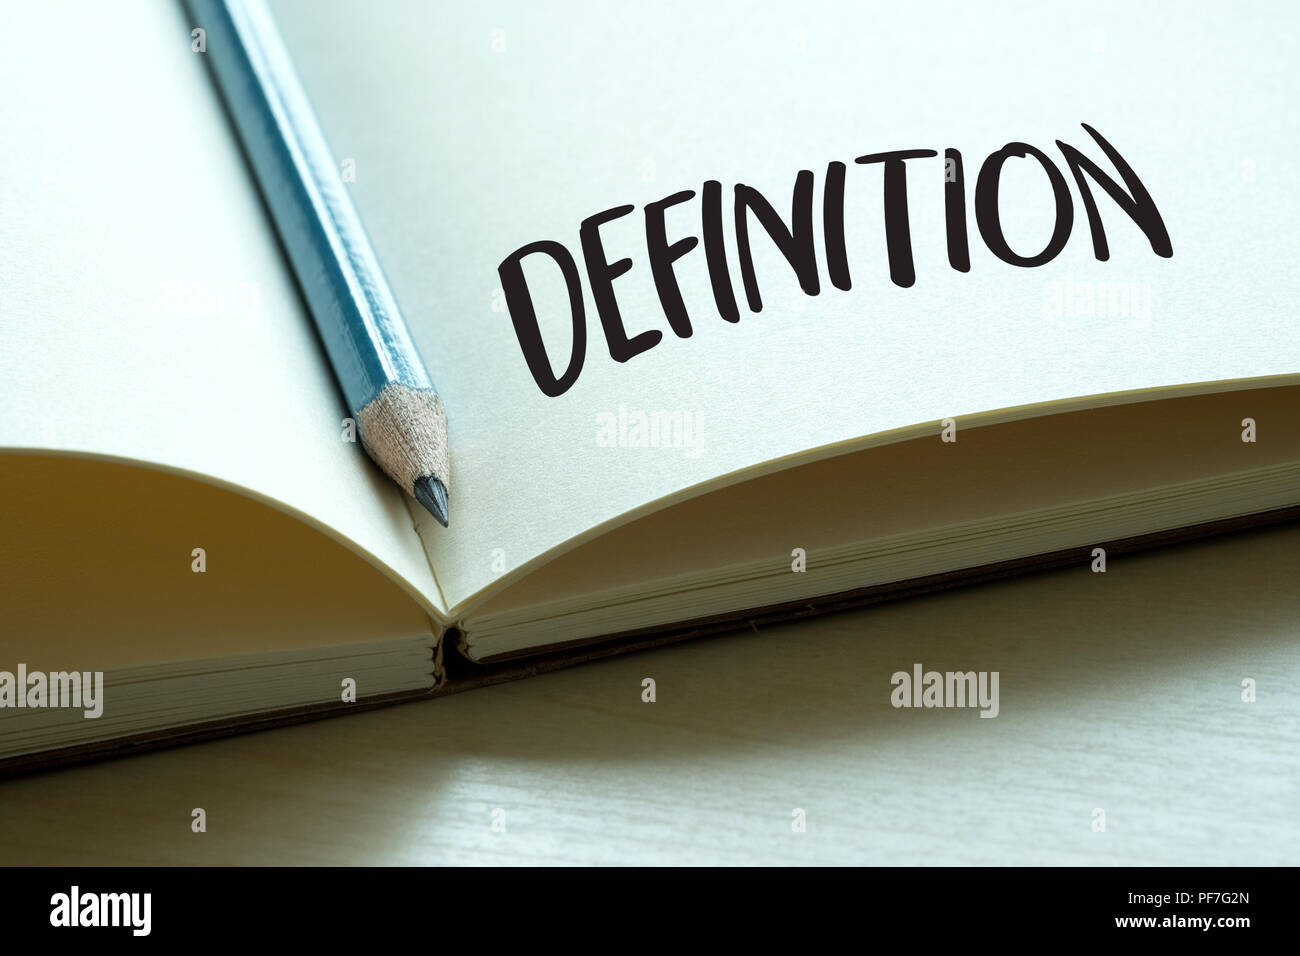 definition word business concep stock photo 215910541 alamy